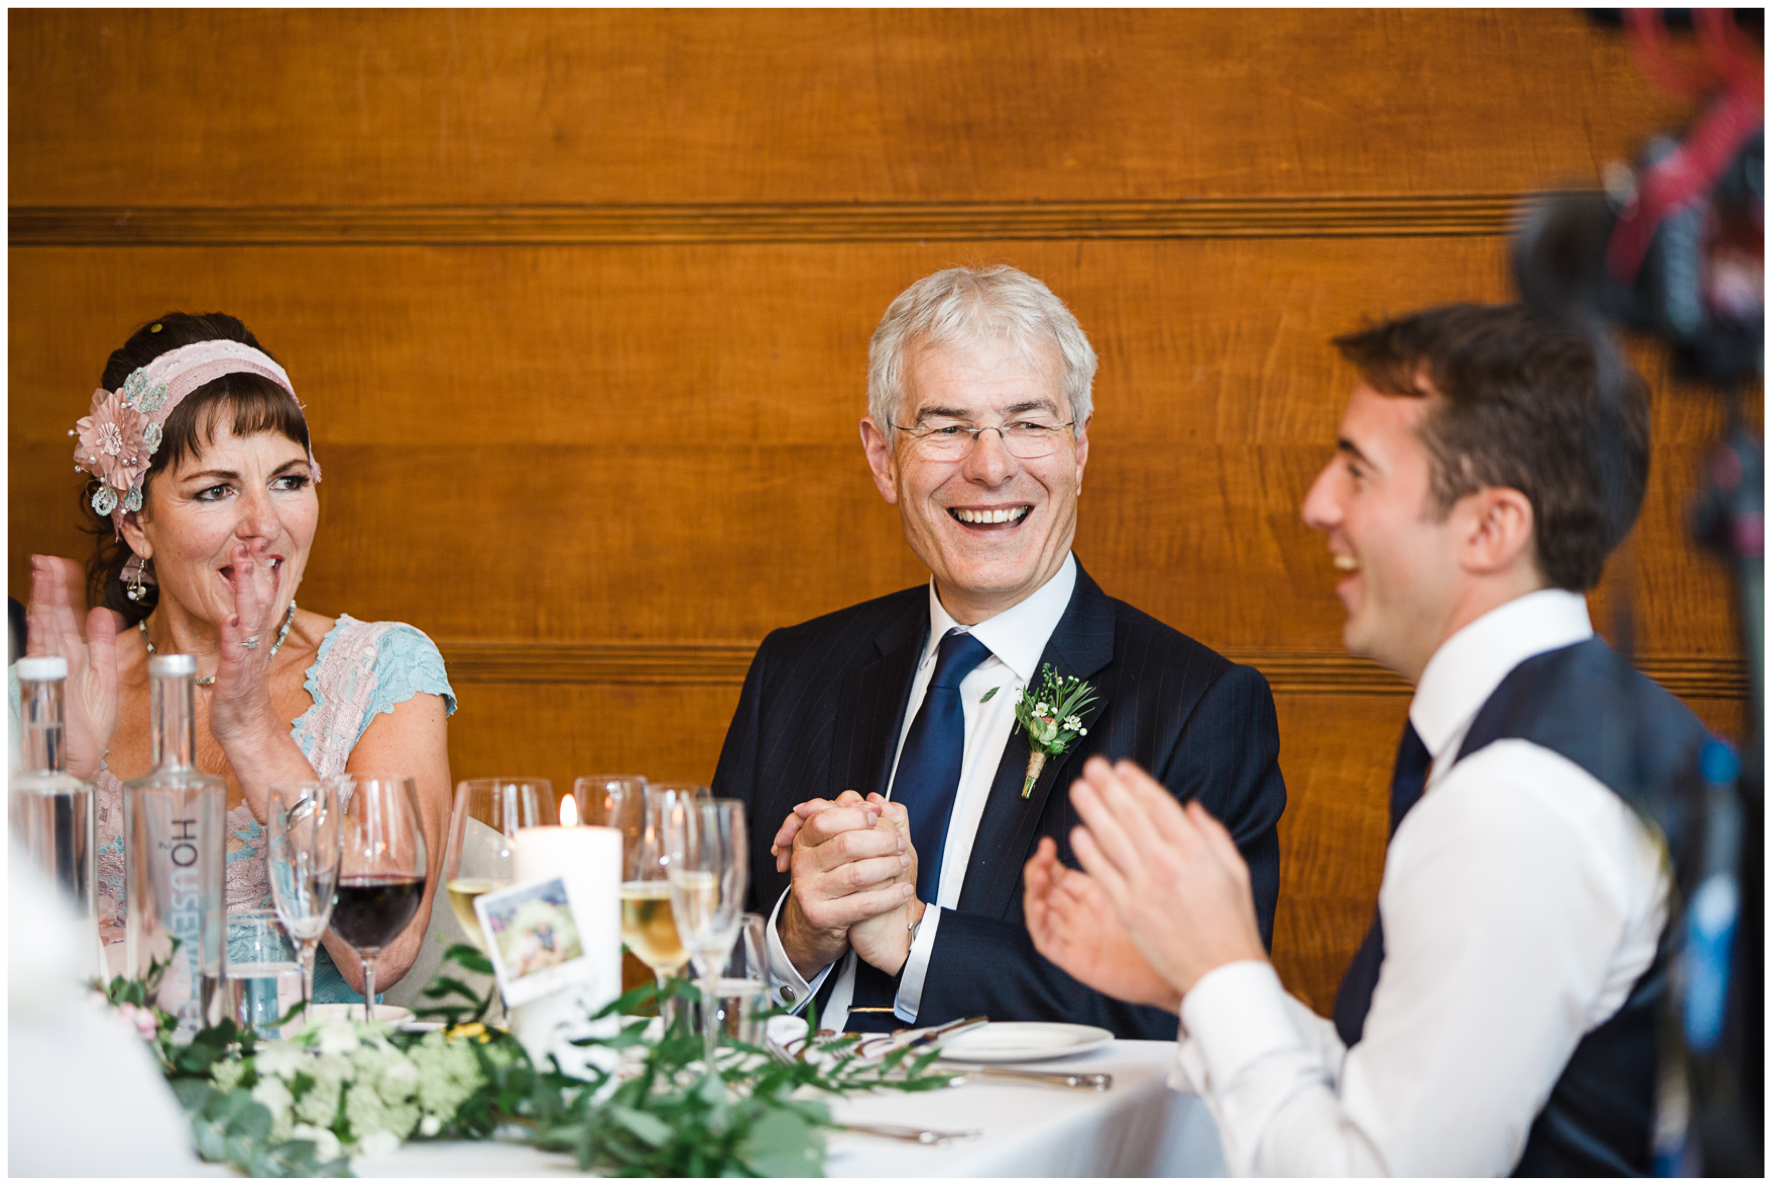 Lucy Davenport Photography, Town Hall Hotel, London wedding, Rock My Wedding, wedding breakfast, speeches,